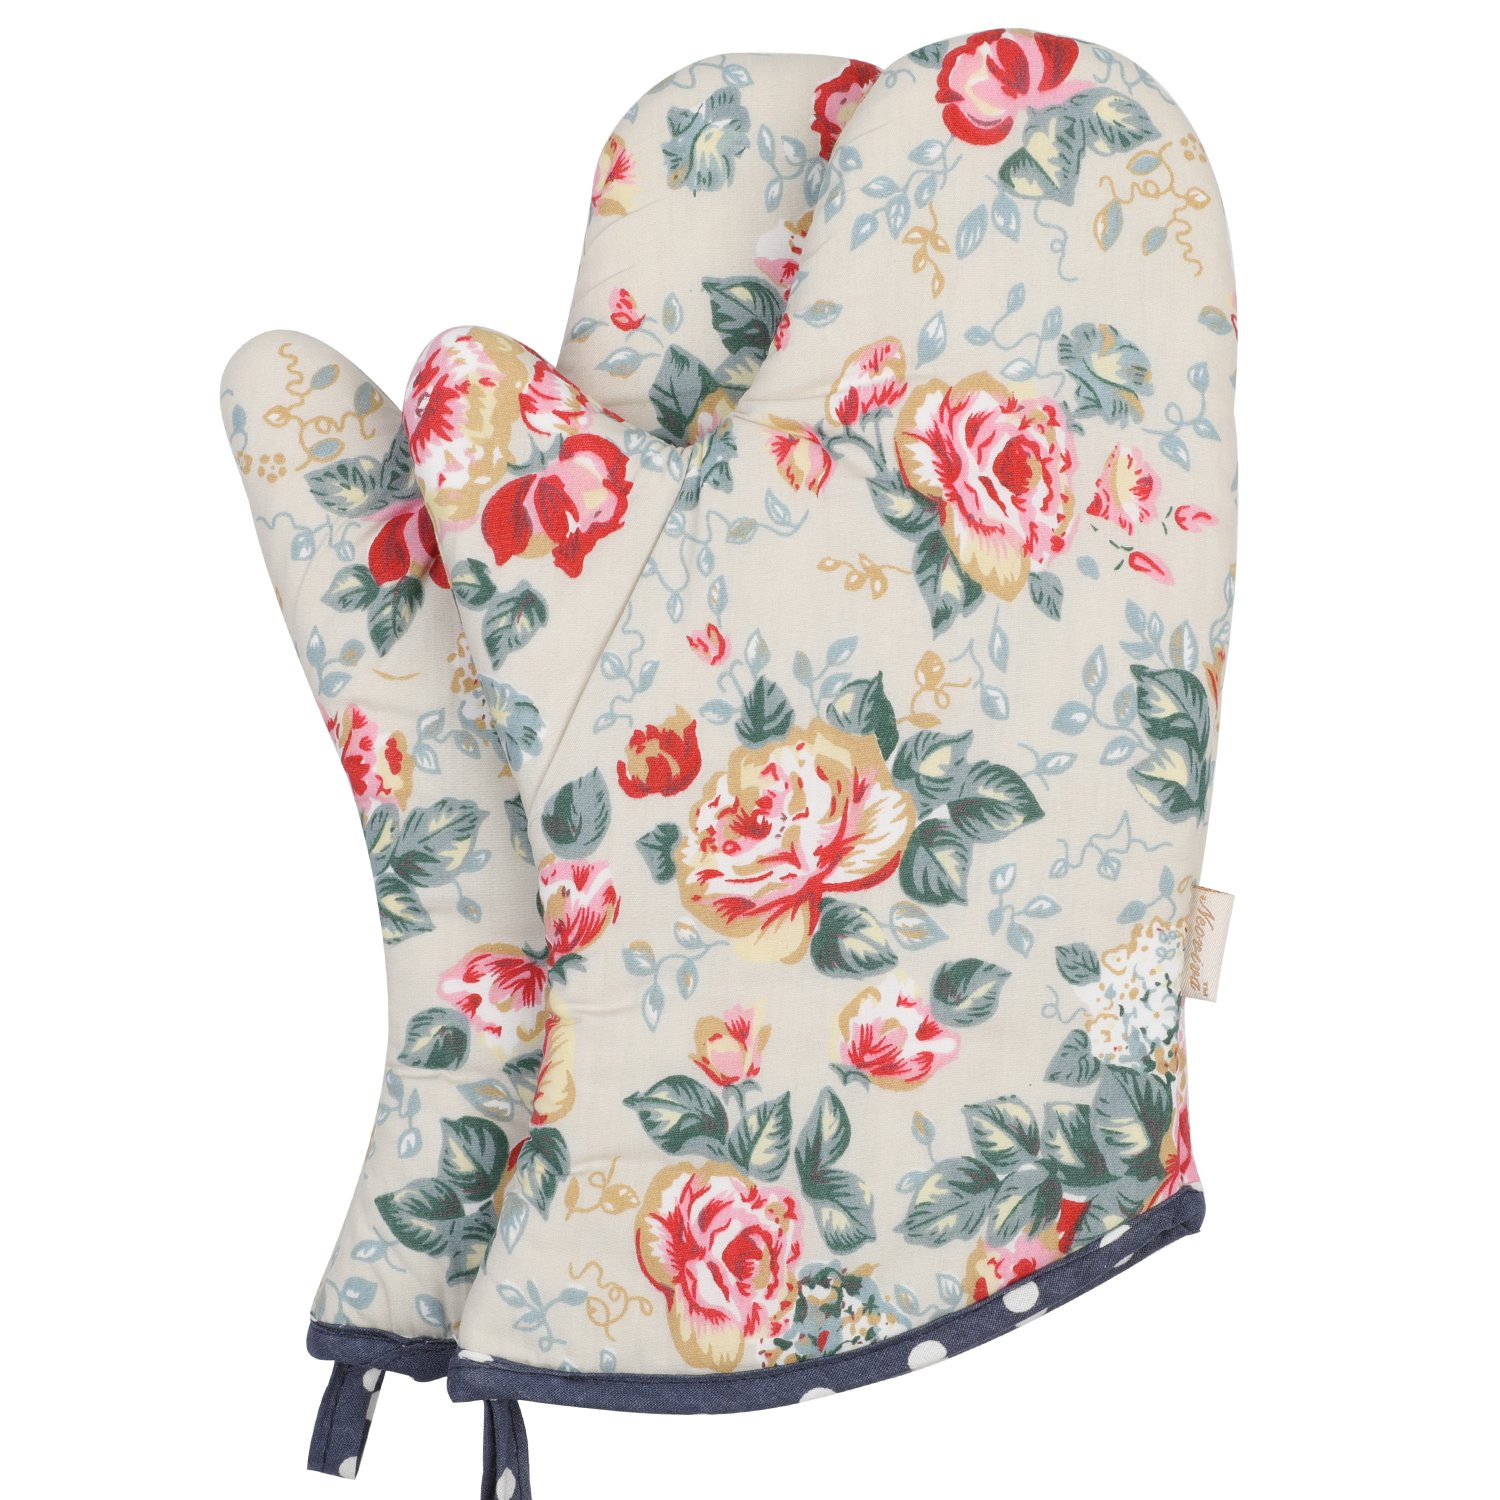 Neoviva Cotton Quilt Oven Mitt for Adult, Pack of 2, Floral Quarry Bloom XinDaSheng(HangZhou) Arts Co. LTD